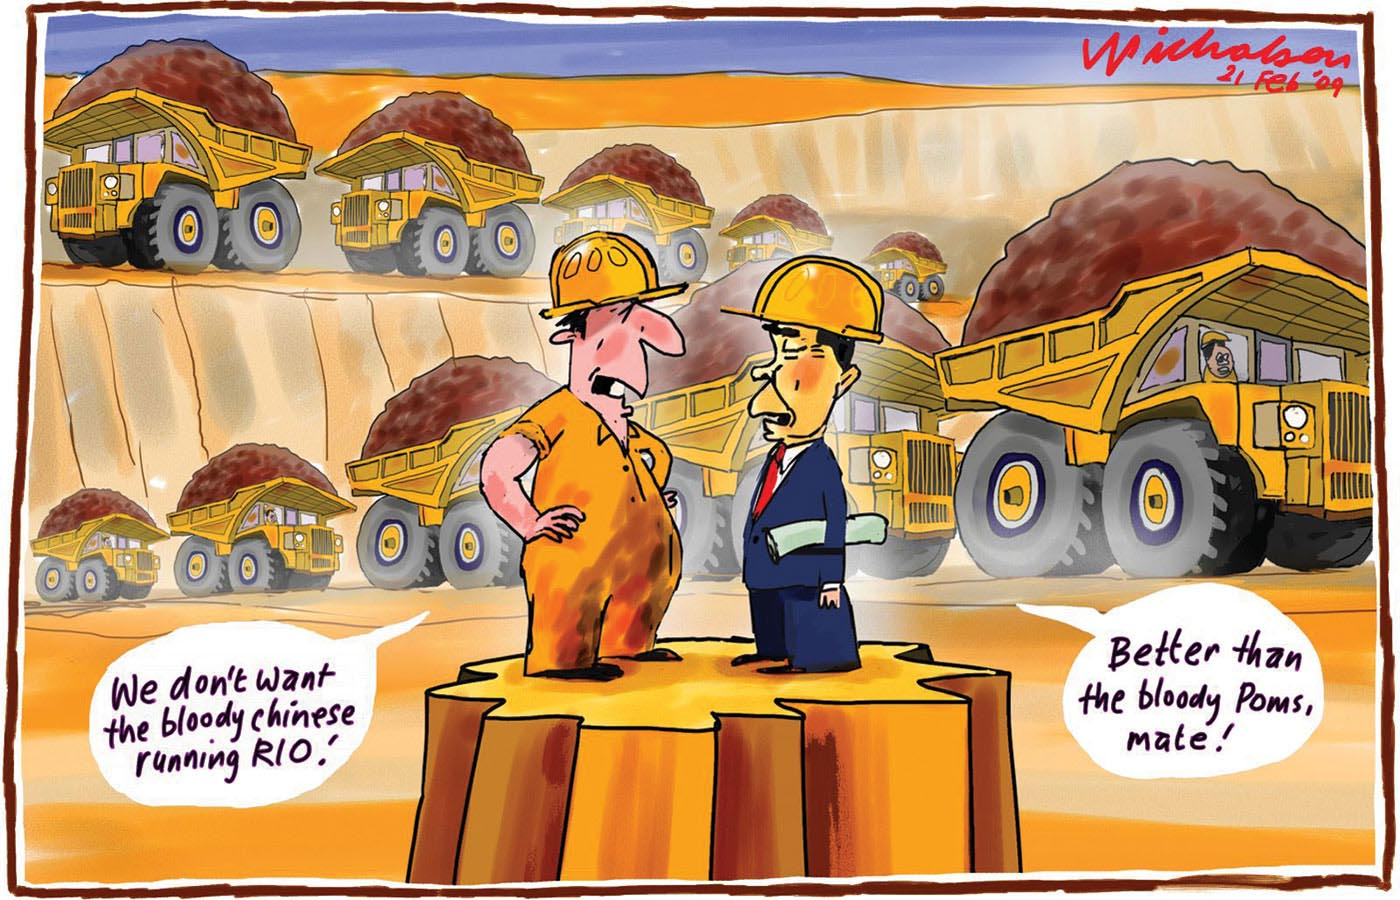 A colour cartoon depicting an Australian mine worker and a Chinese businessman standing on a platform of earth in an open-cut mine. The mine worker wears dirty yellow overalls and a hard hat. The Chinese man wears a suit and hard hat. He has a rolled up document under his left arm. The two men are standing facing each other. The mine worker is saying 'We don't want the bloody Chinese running RIO!' The Chinese man replies 'Better than the bloody Poms, mate!' In the background are two long lines of large heavily laden mining trucks emerging from the mine. Each truck is laden with what appears to be iron ore. - click to view larger image